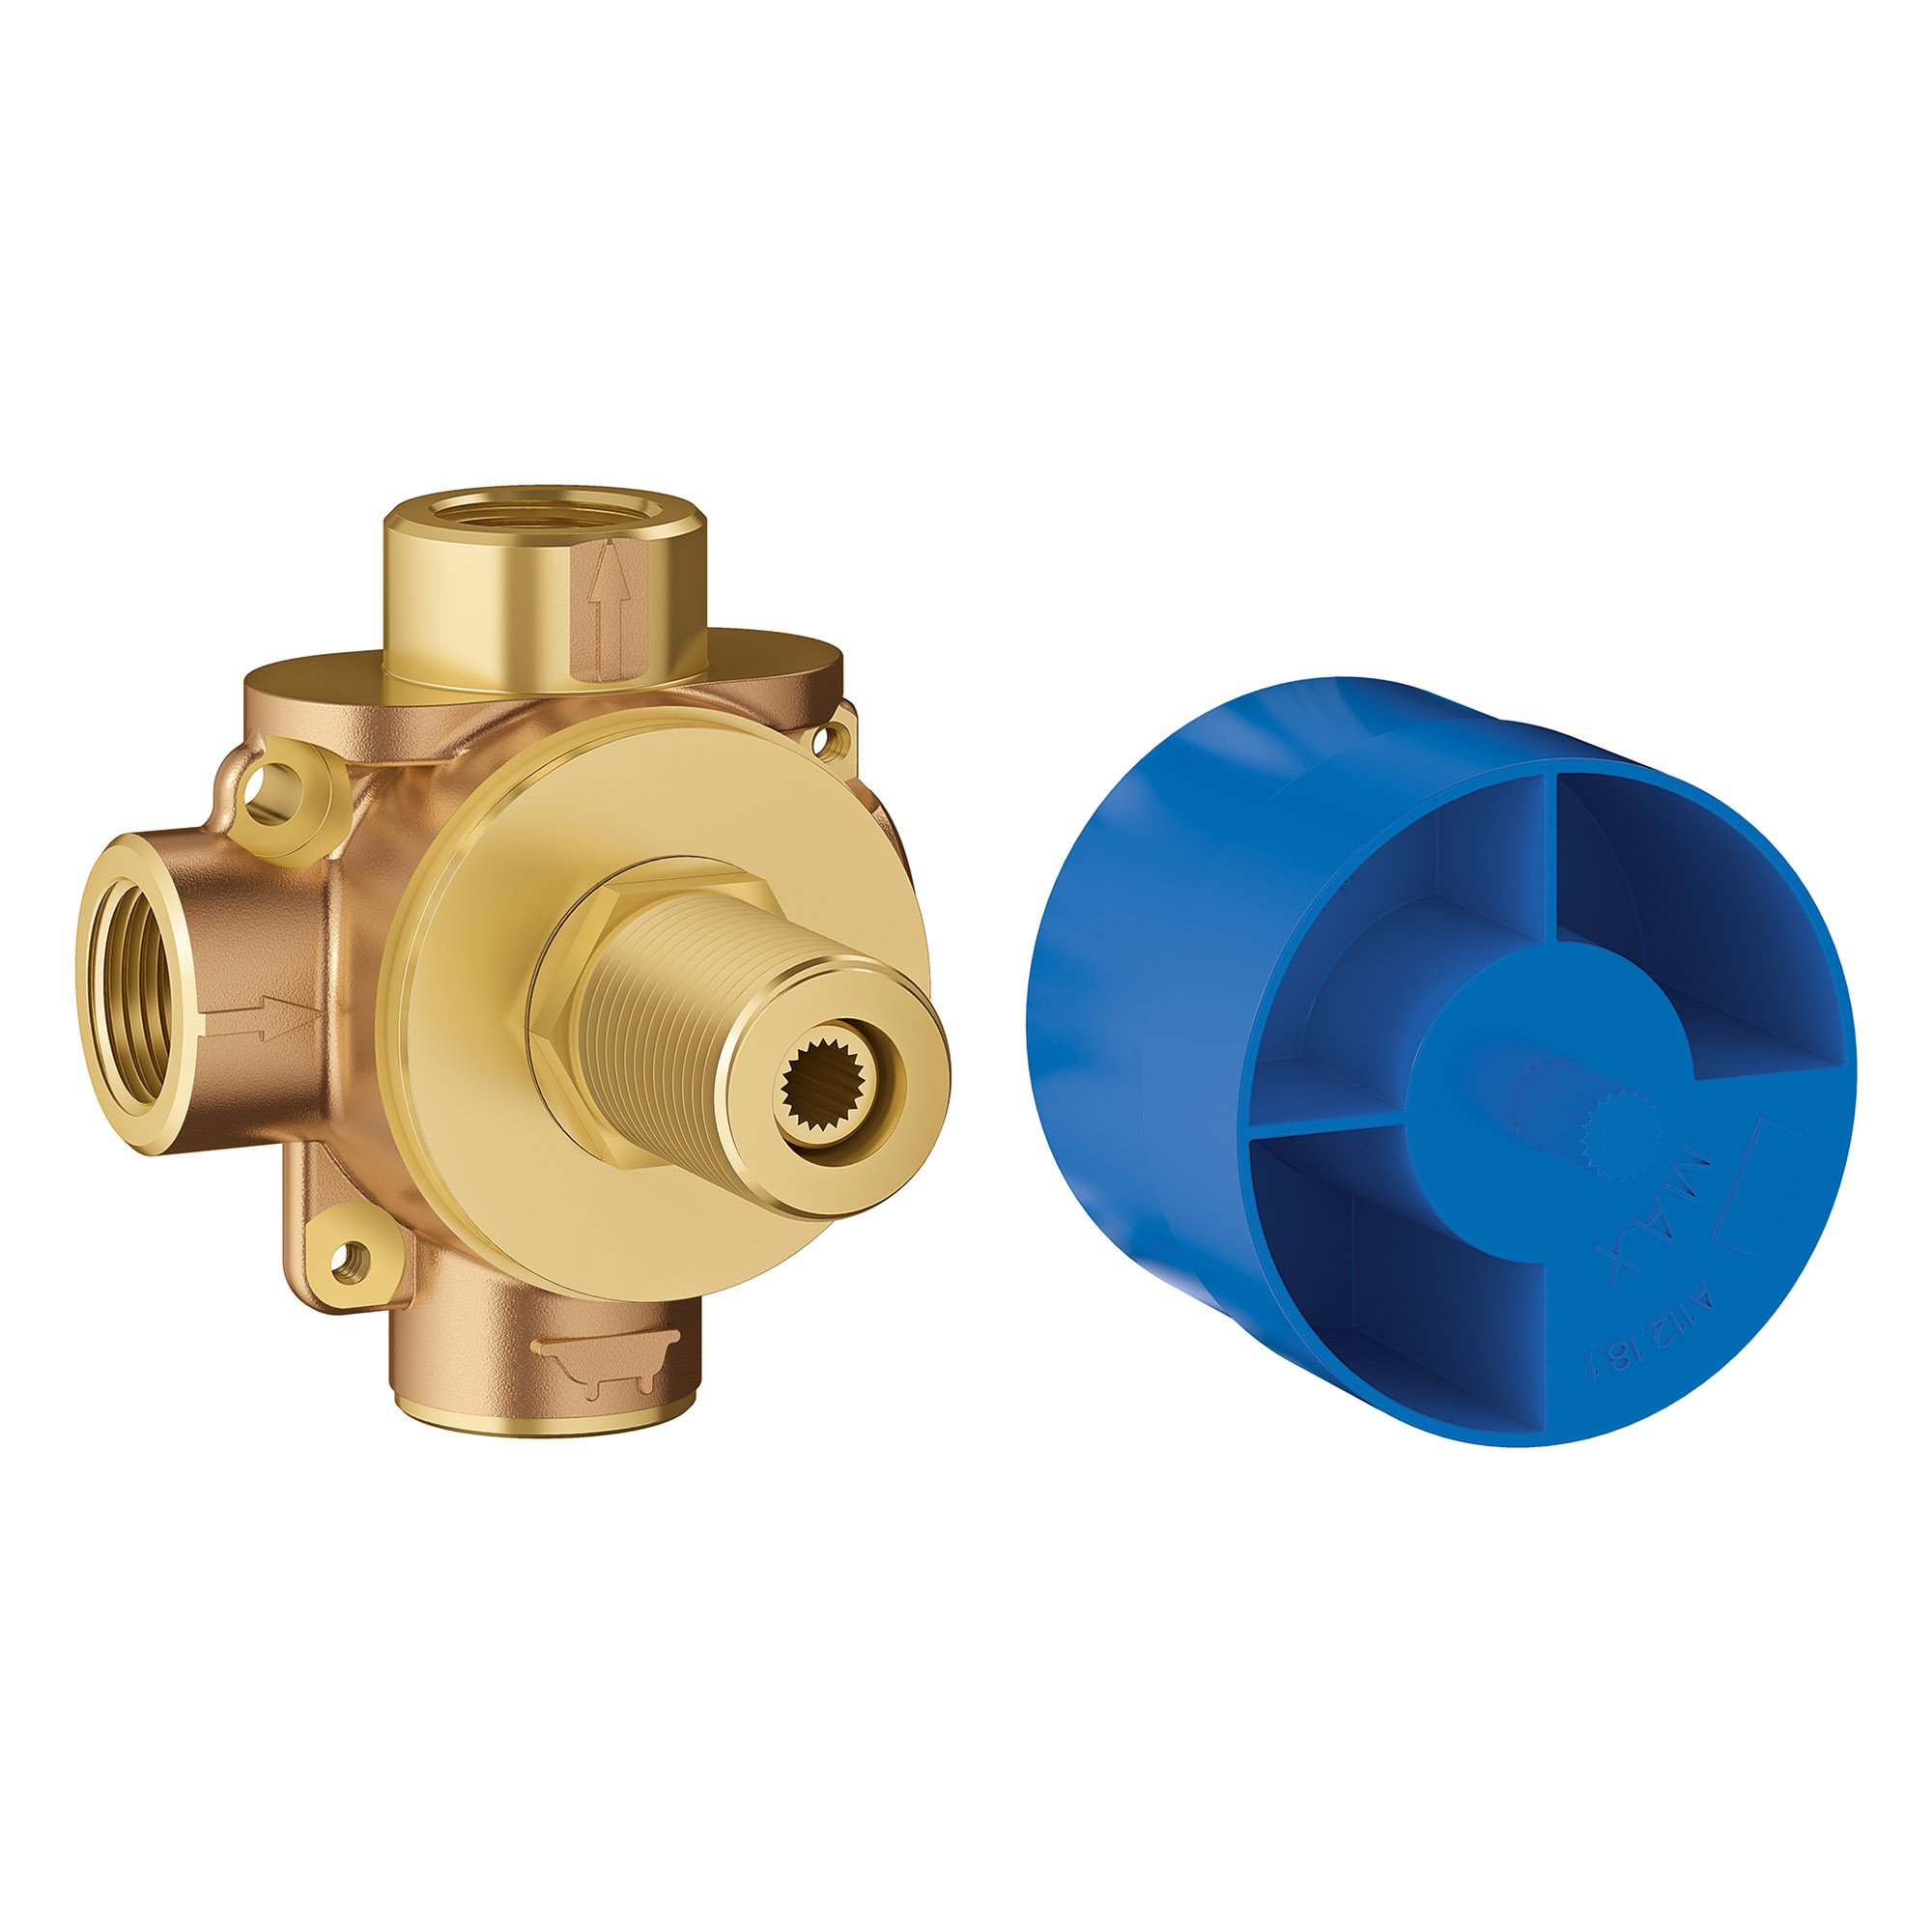 GROHE 29901000 Concetto 2-Way Diverter Rough-In Valve,,, Brass